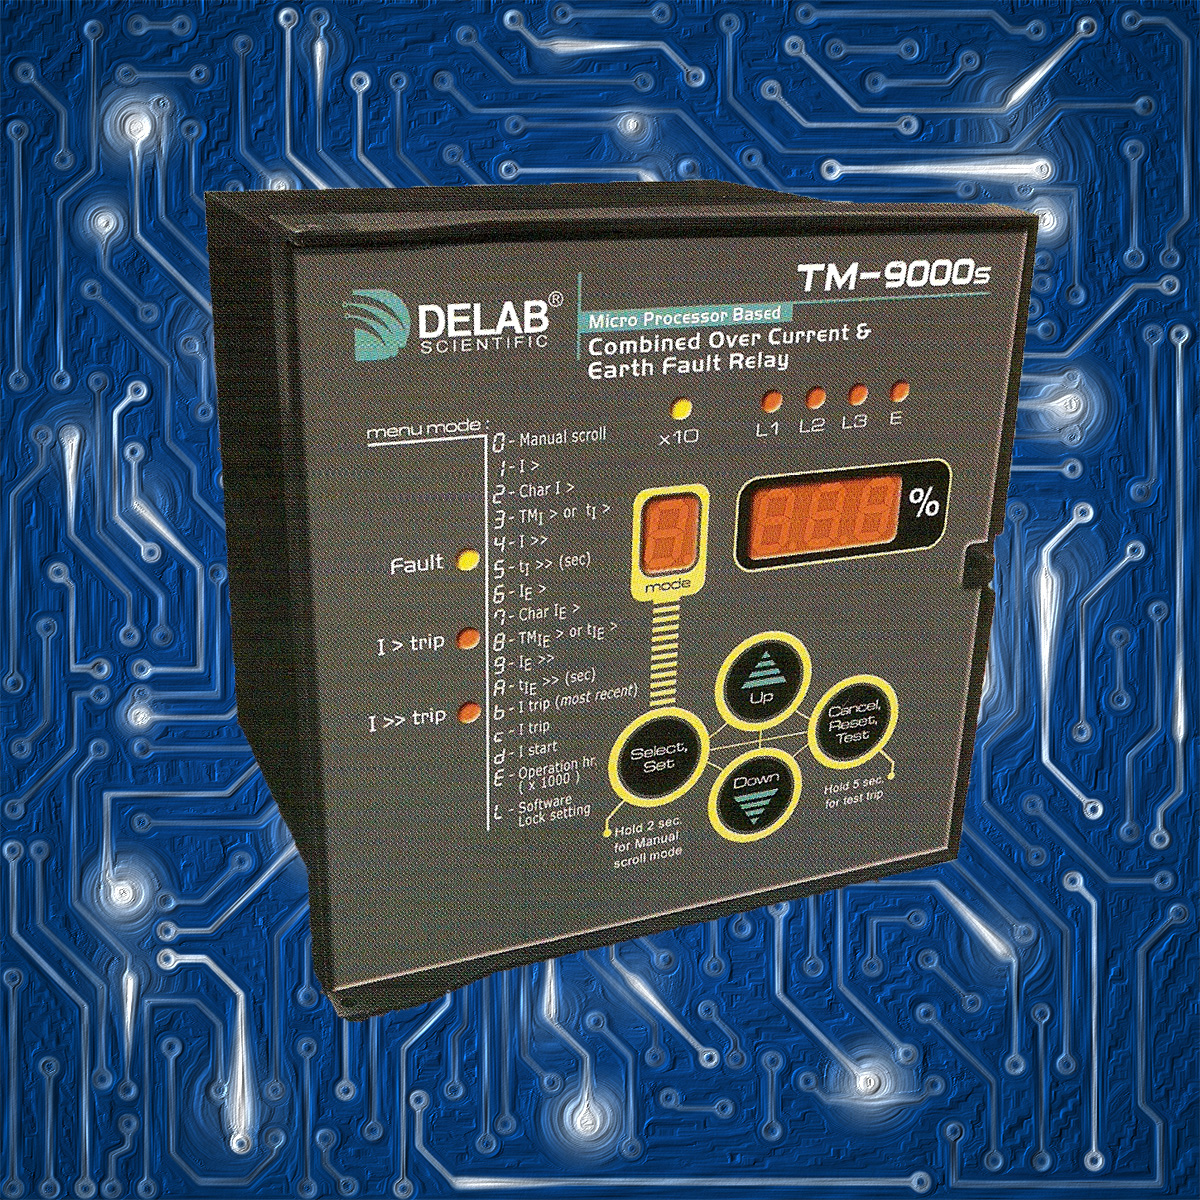 Delab Scientific Earth Protection Relay Digital Microprocessors Current Based Combined Over And Fault Tm 9000s